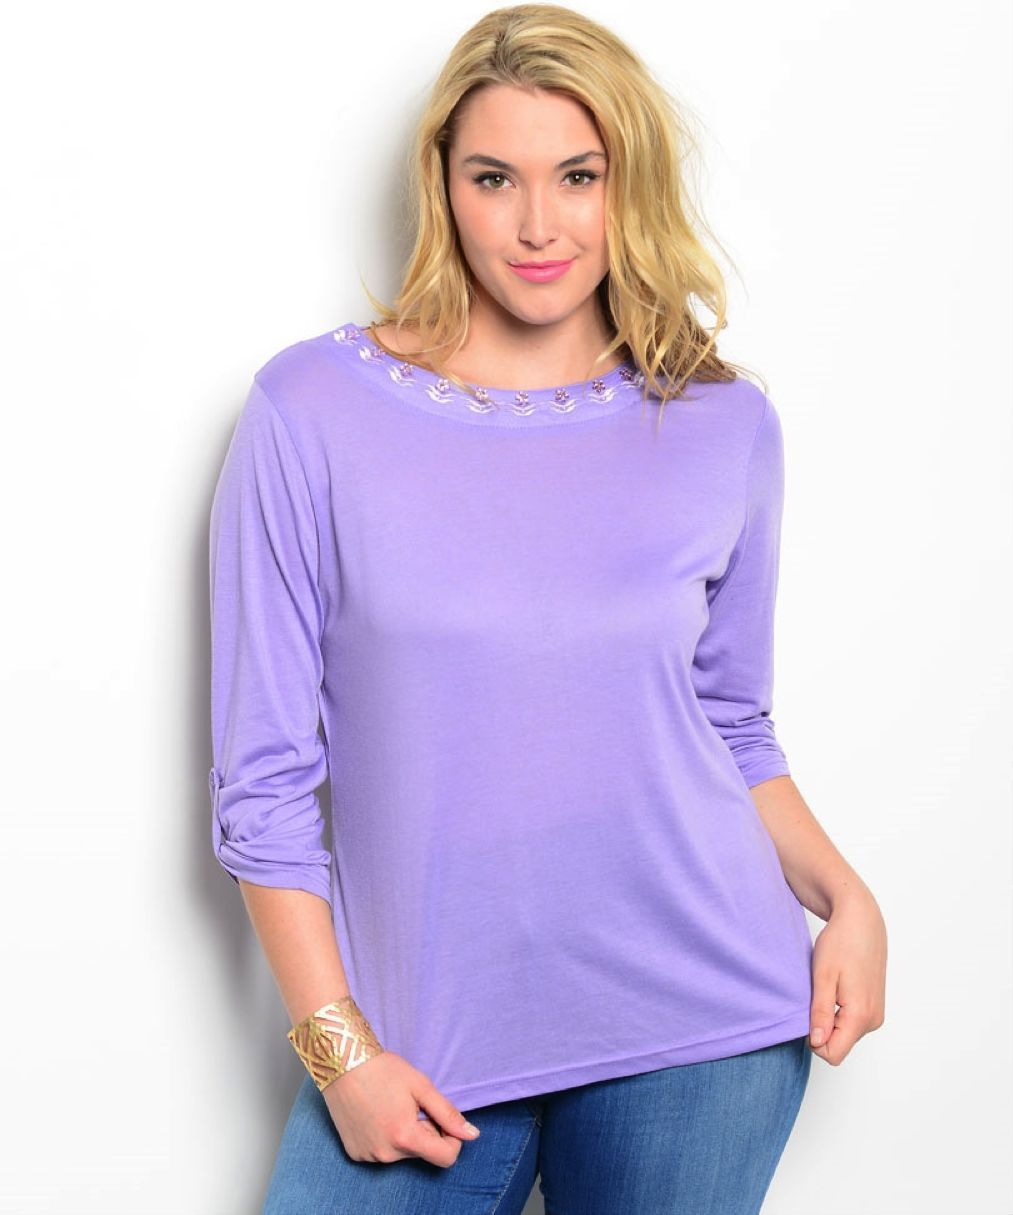 Image 0 of Romantic Purple Polyester 3/4 Plus Sleeves Tunic Top, Embellished Neckline - Pur